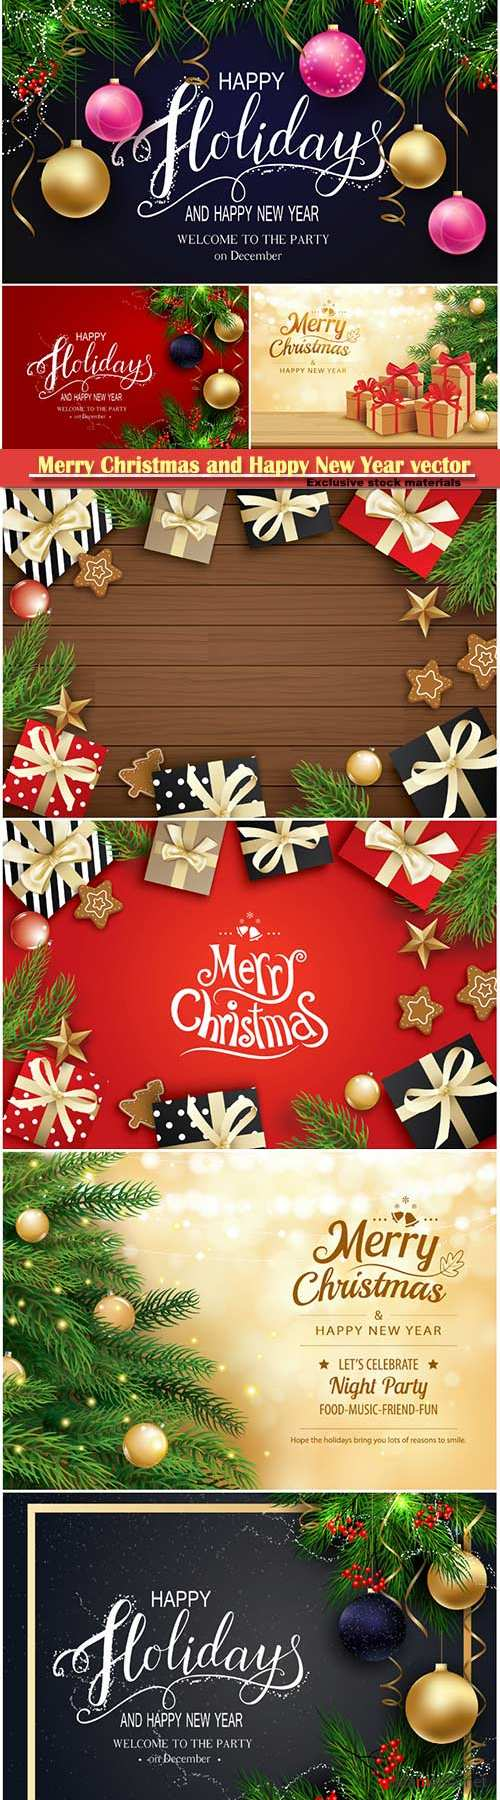 2019 Merry Christmas and Happy New Year vector design # 3